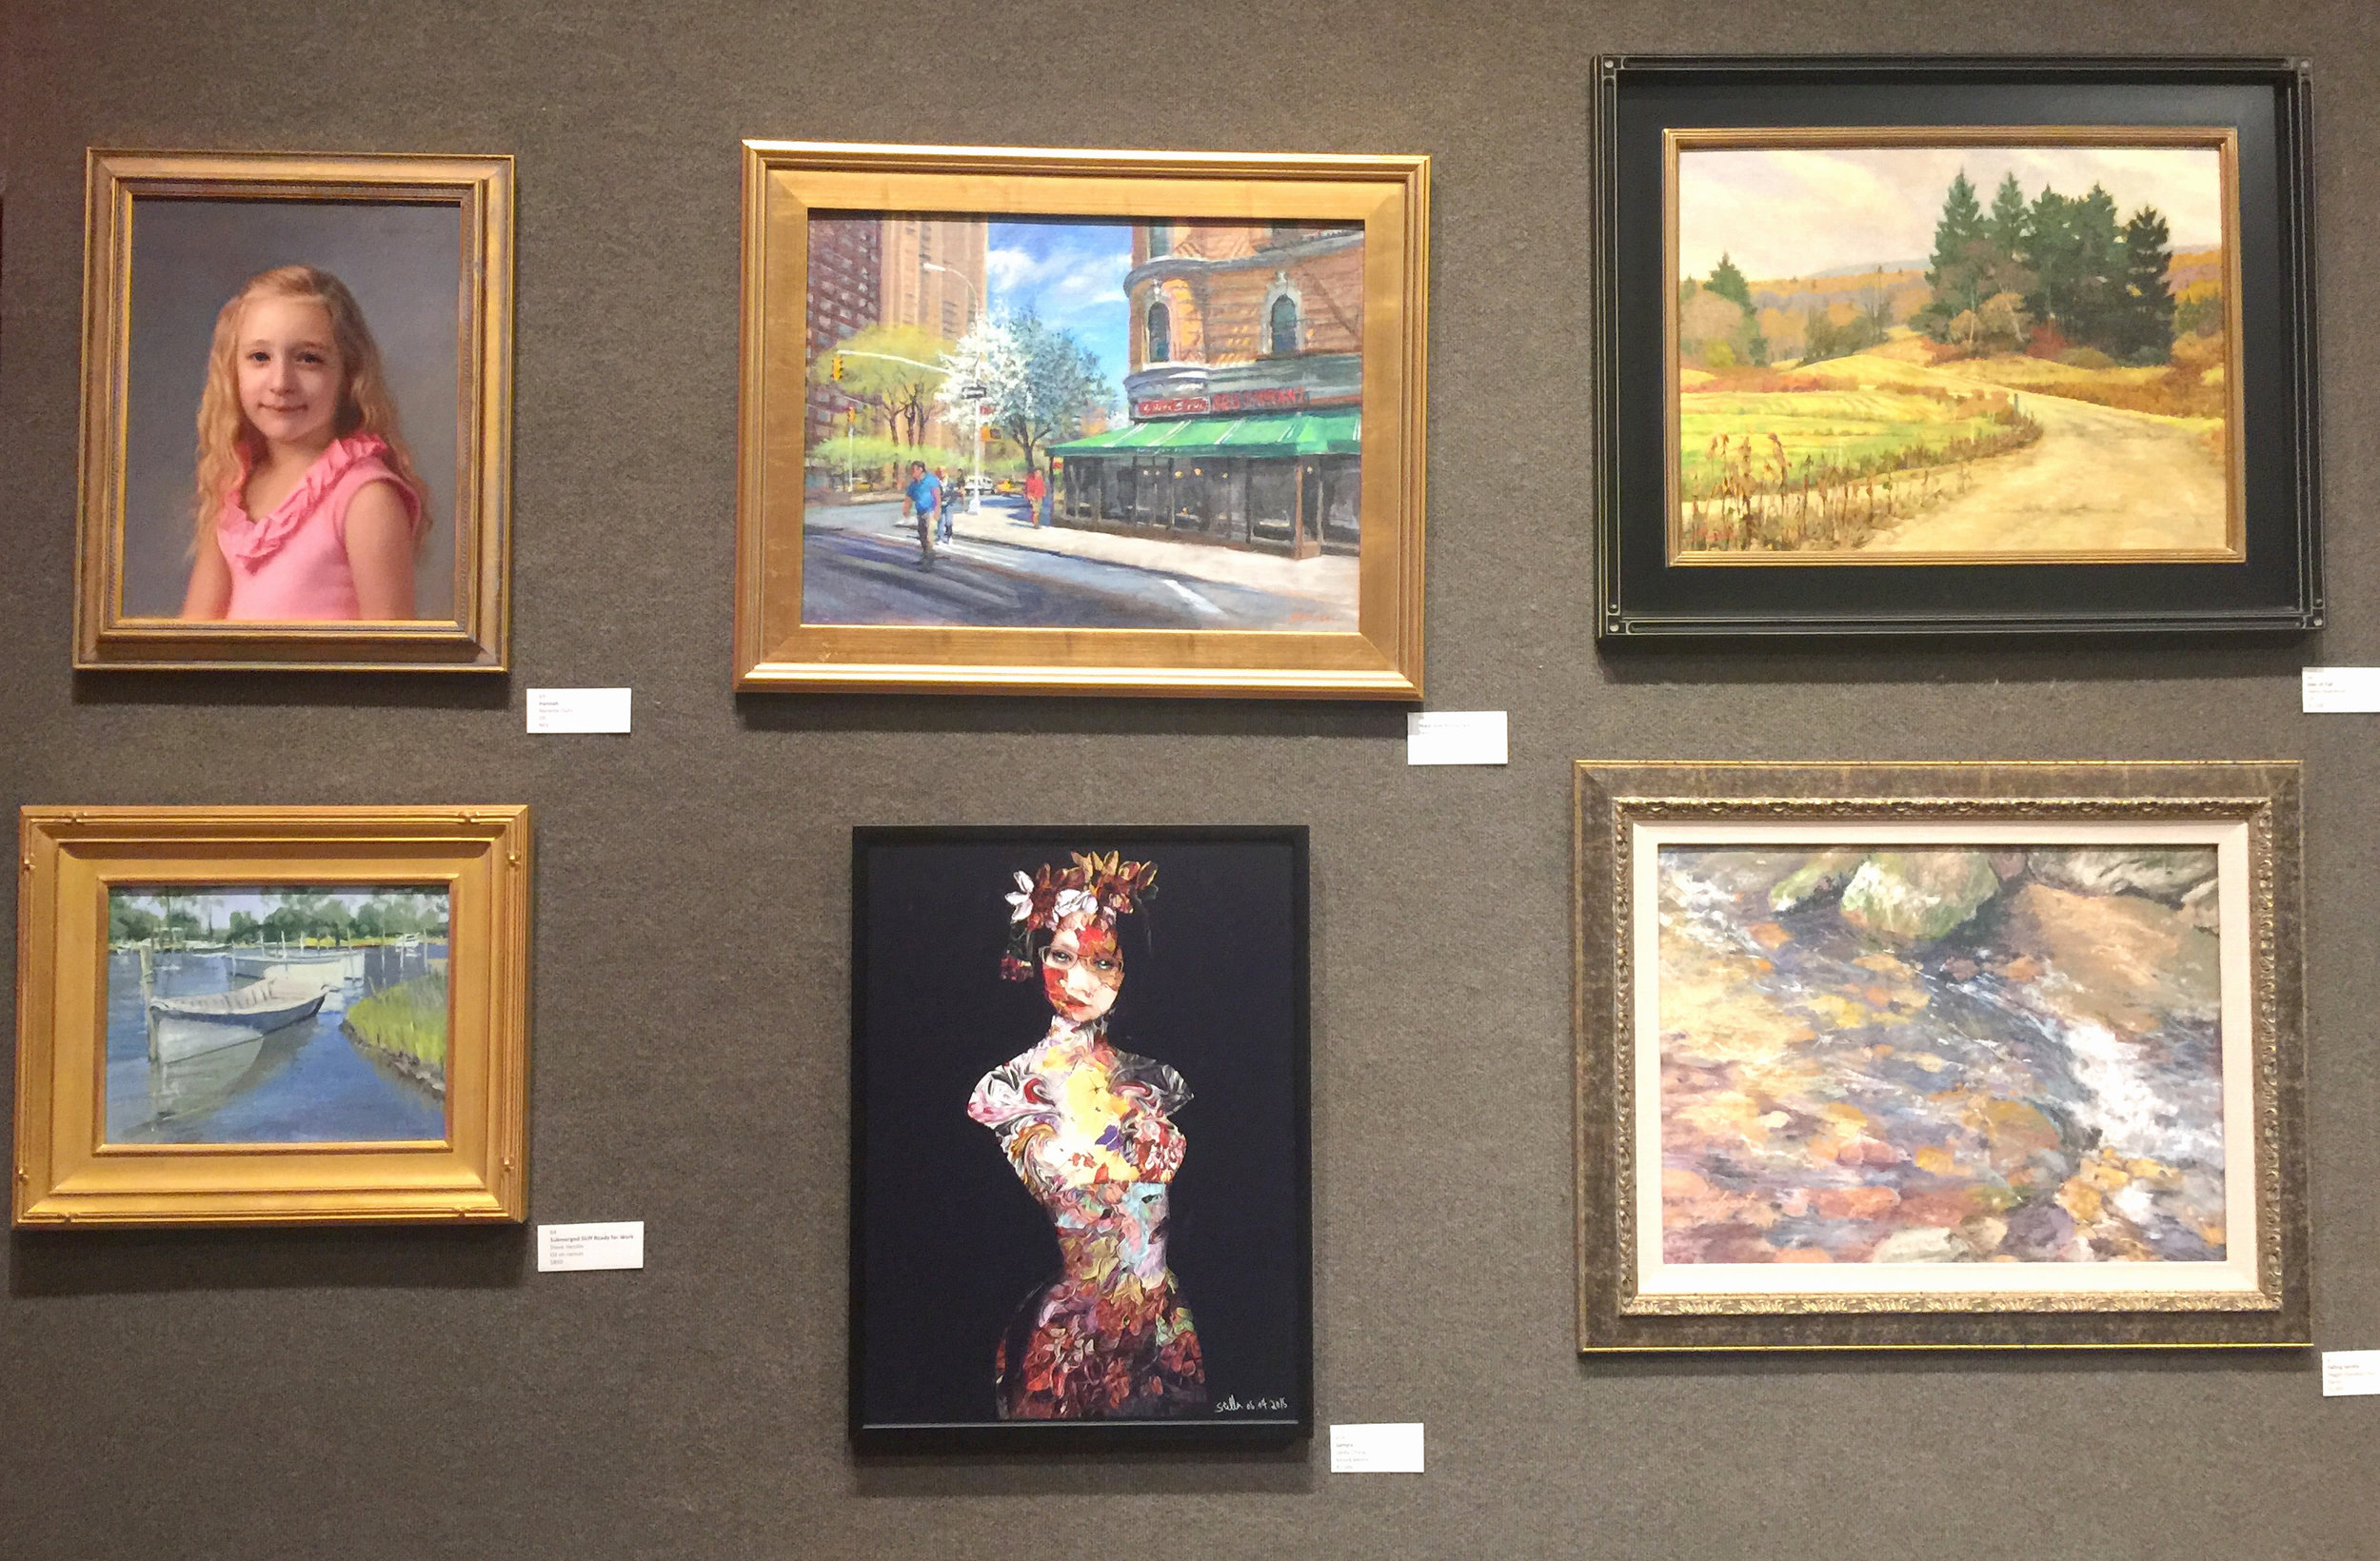 Samjna together with many other beautifully painted artworks...is it wrong that I really want to buy them all!?